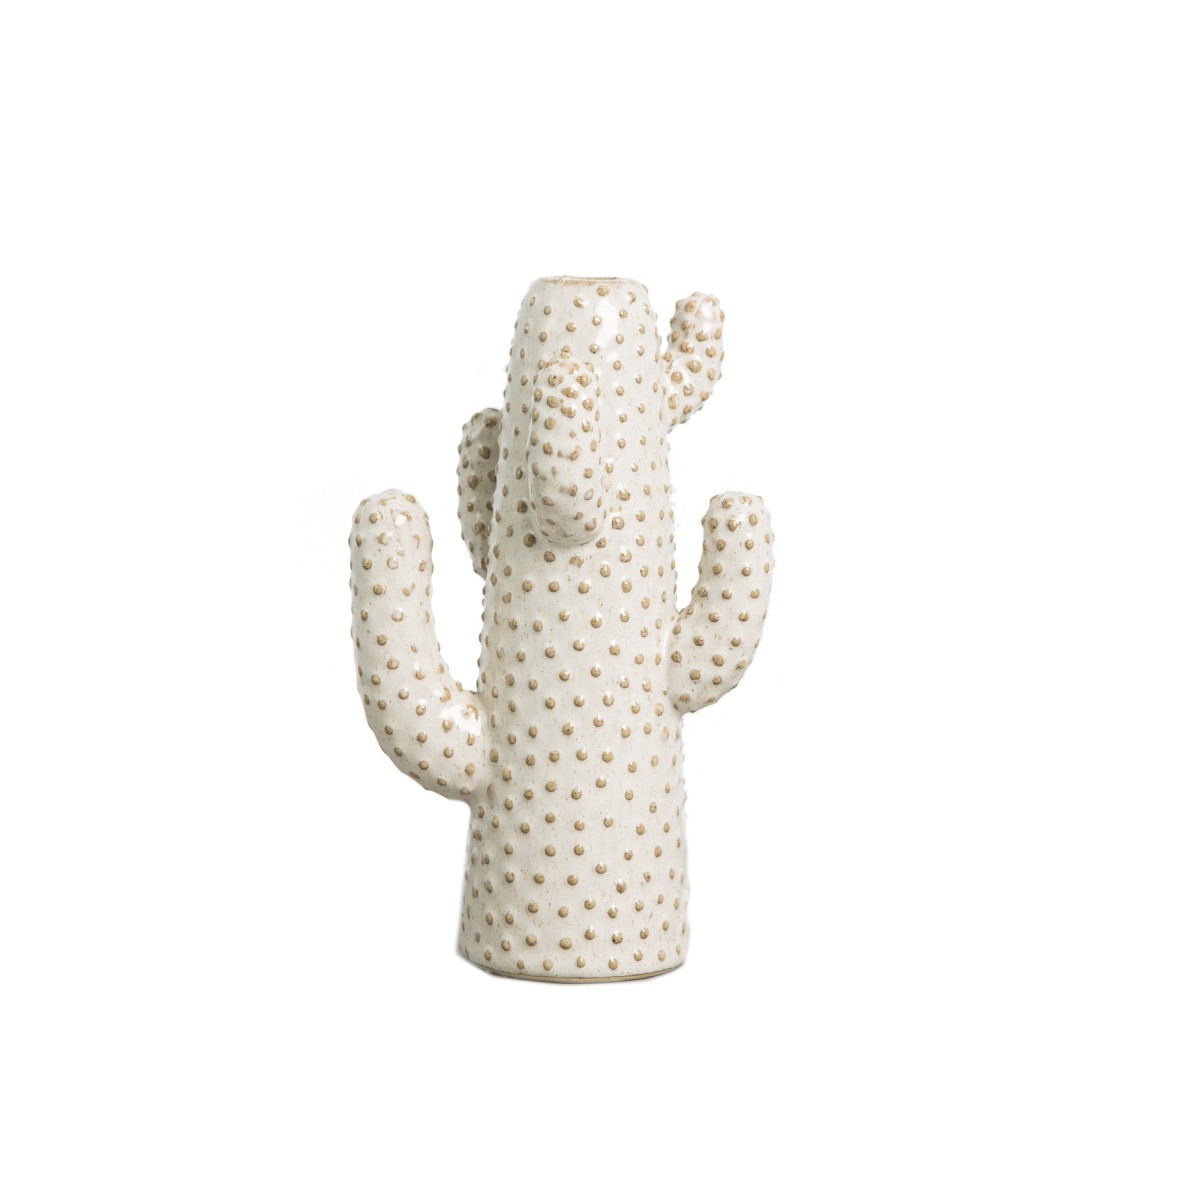 CANDLE HOLDER CACTUS ASPARAGUS